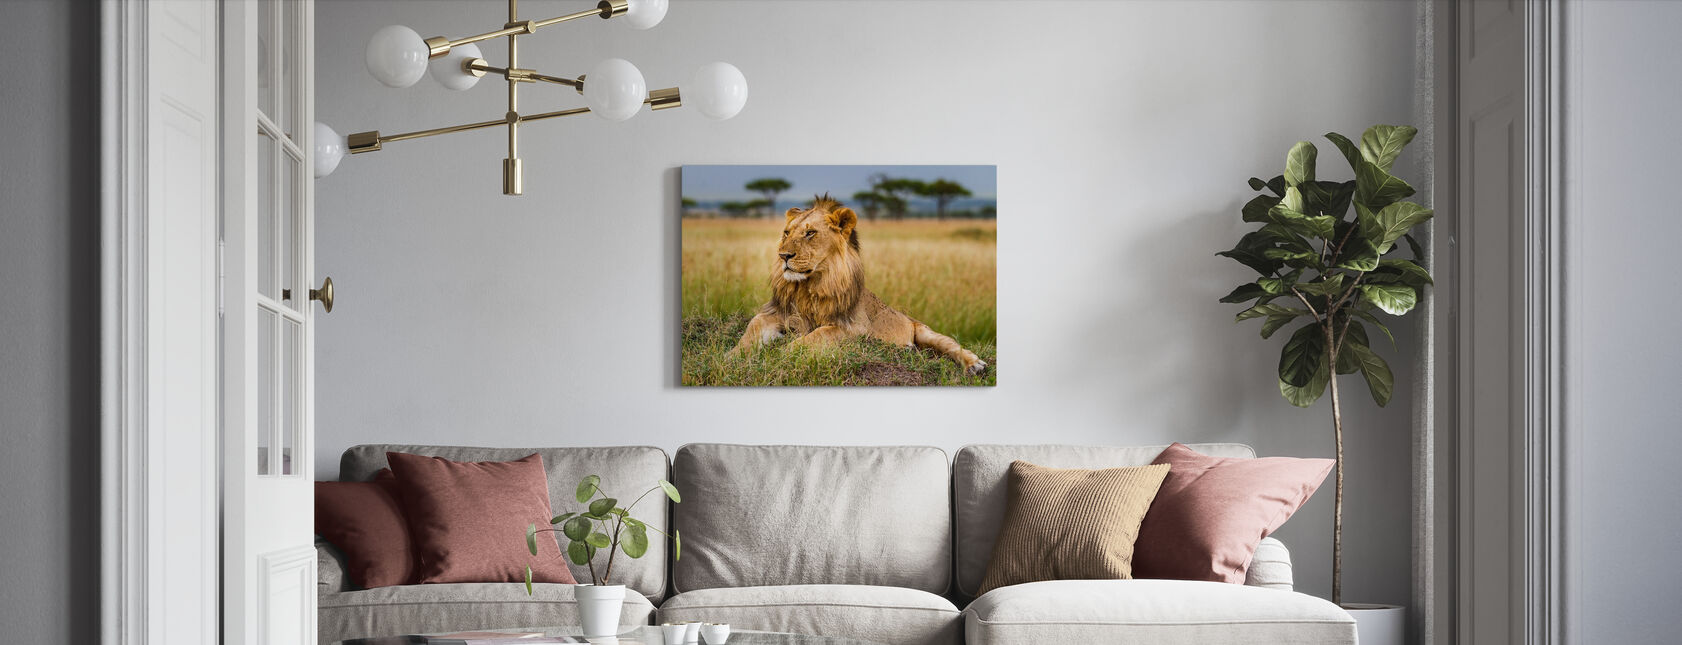 King - Canvas print - Living Room